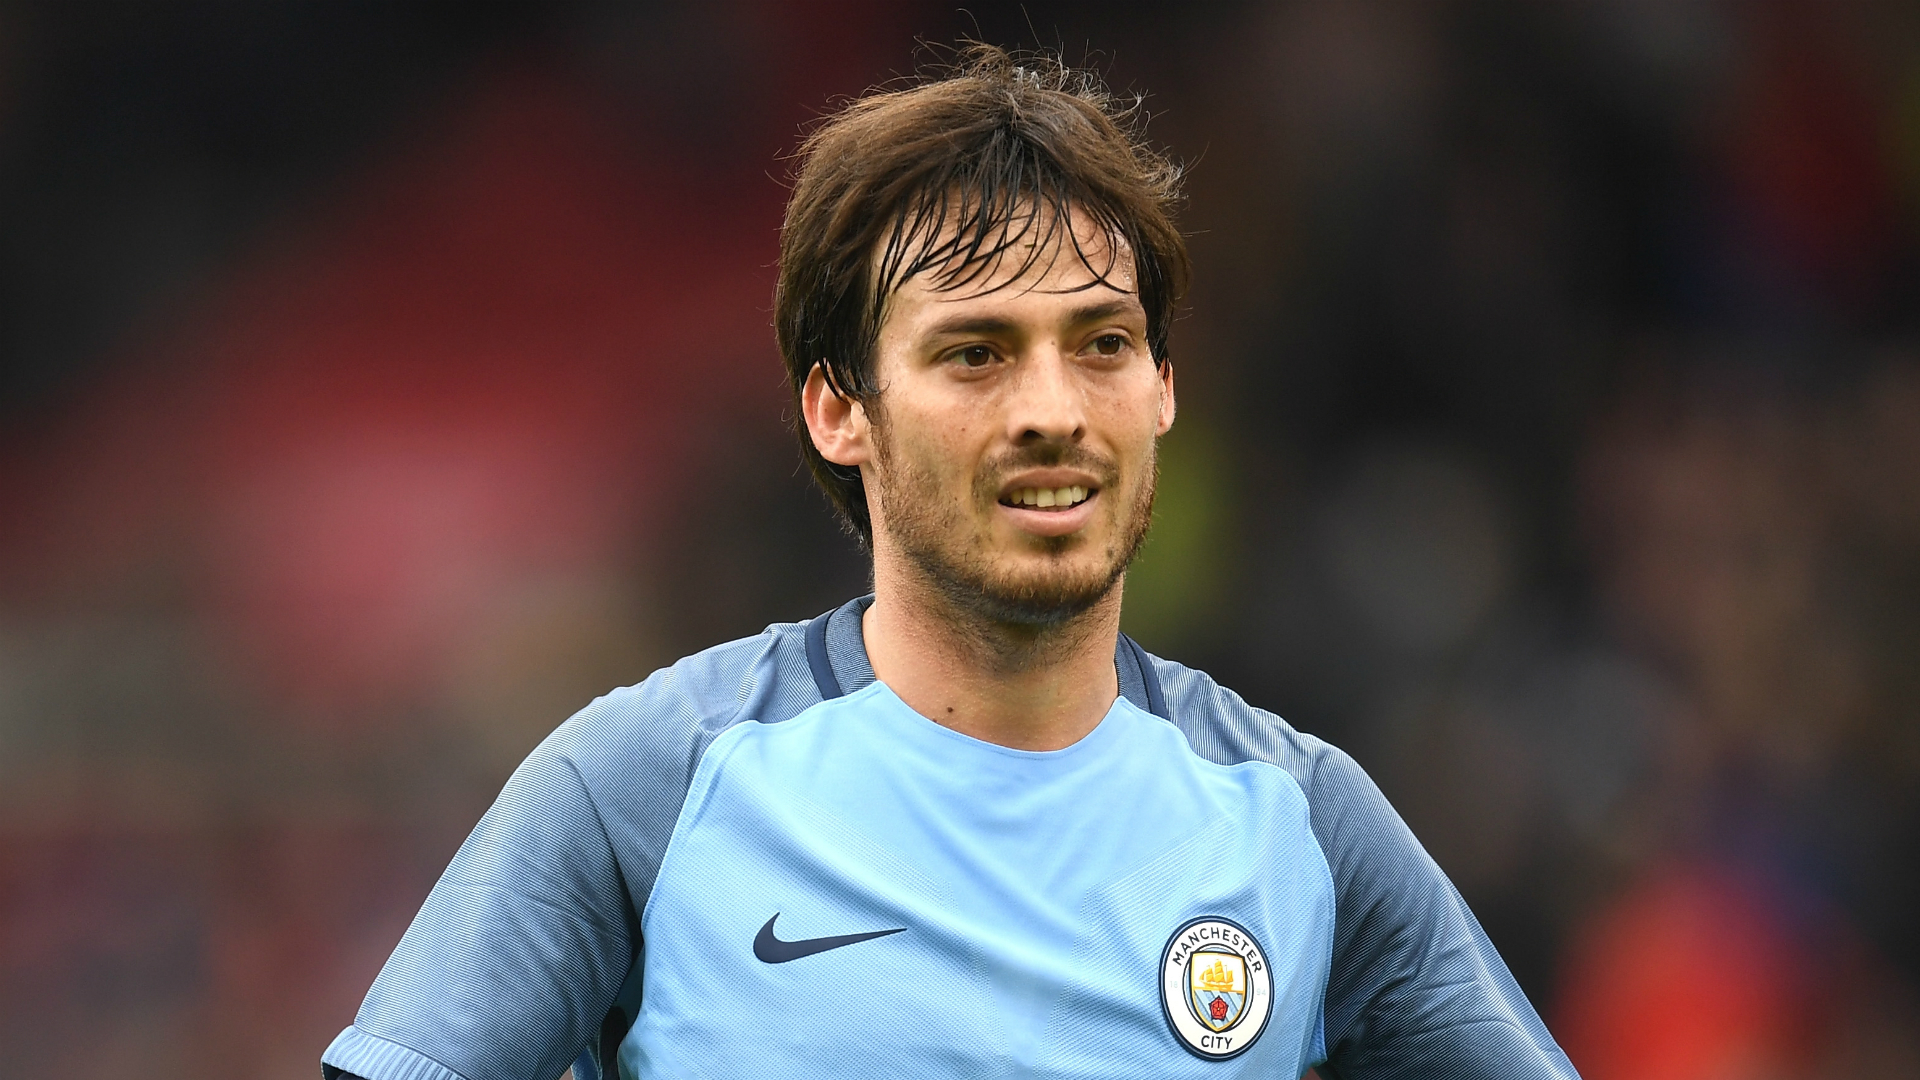 Guardiola reveals how he was told to sign David Silva for Barcelona